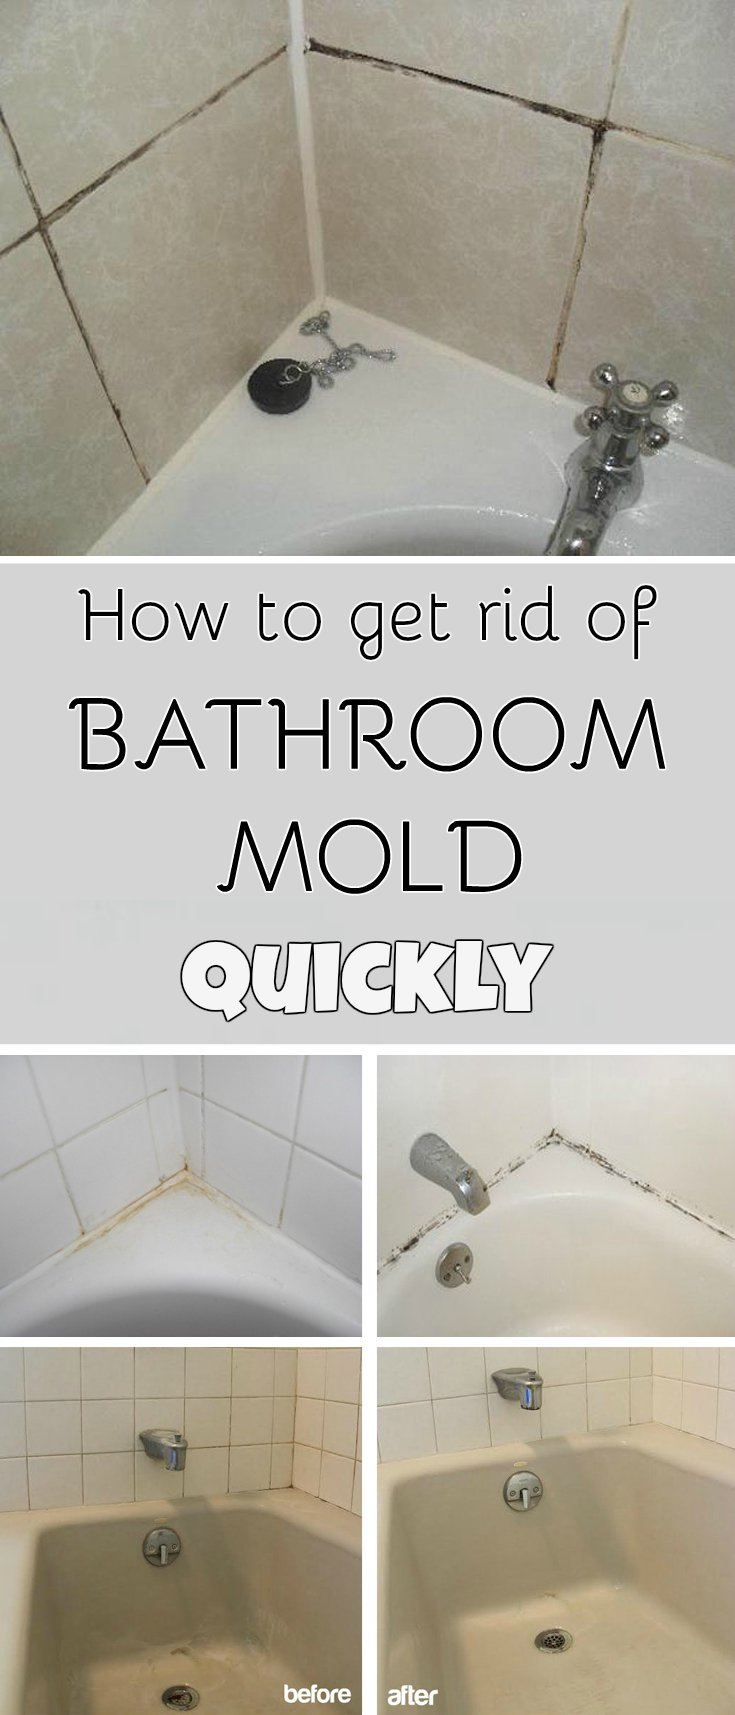 how to get rid of bathroom mold quickly mycleaningsolutionscom - How To Get Rid Of Bathroom Mold